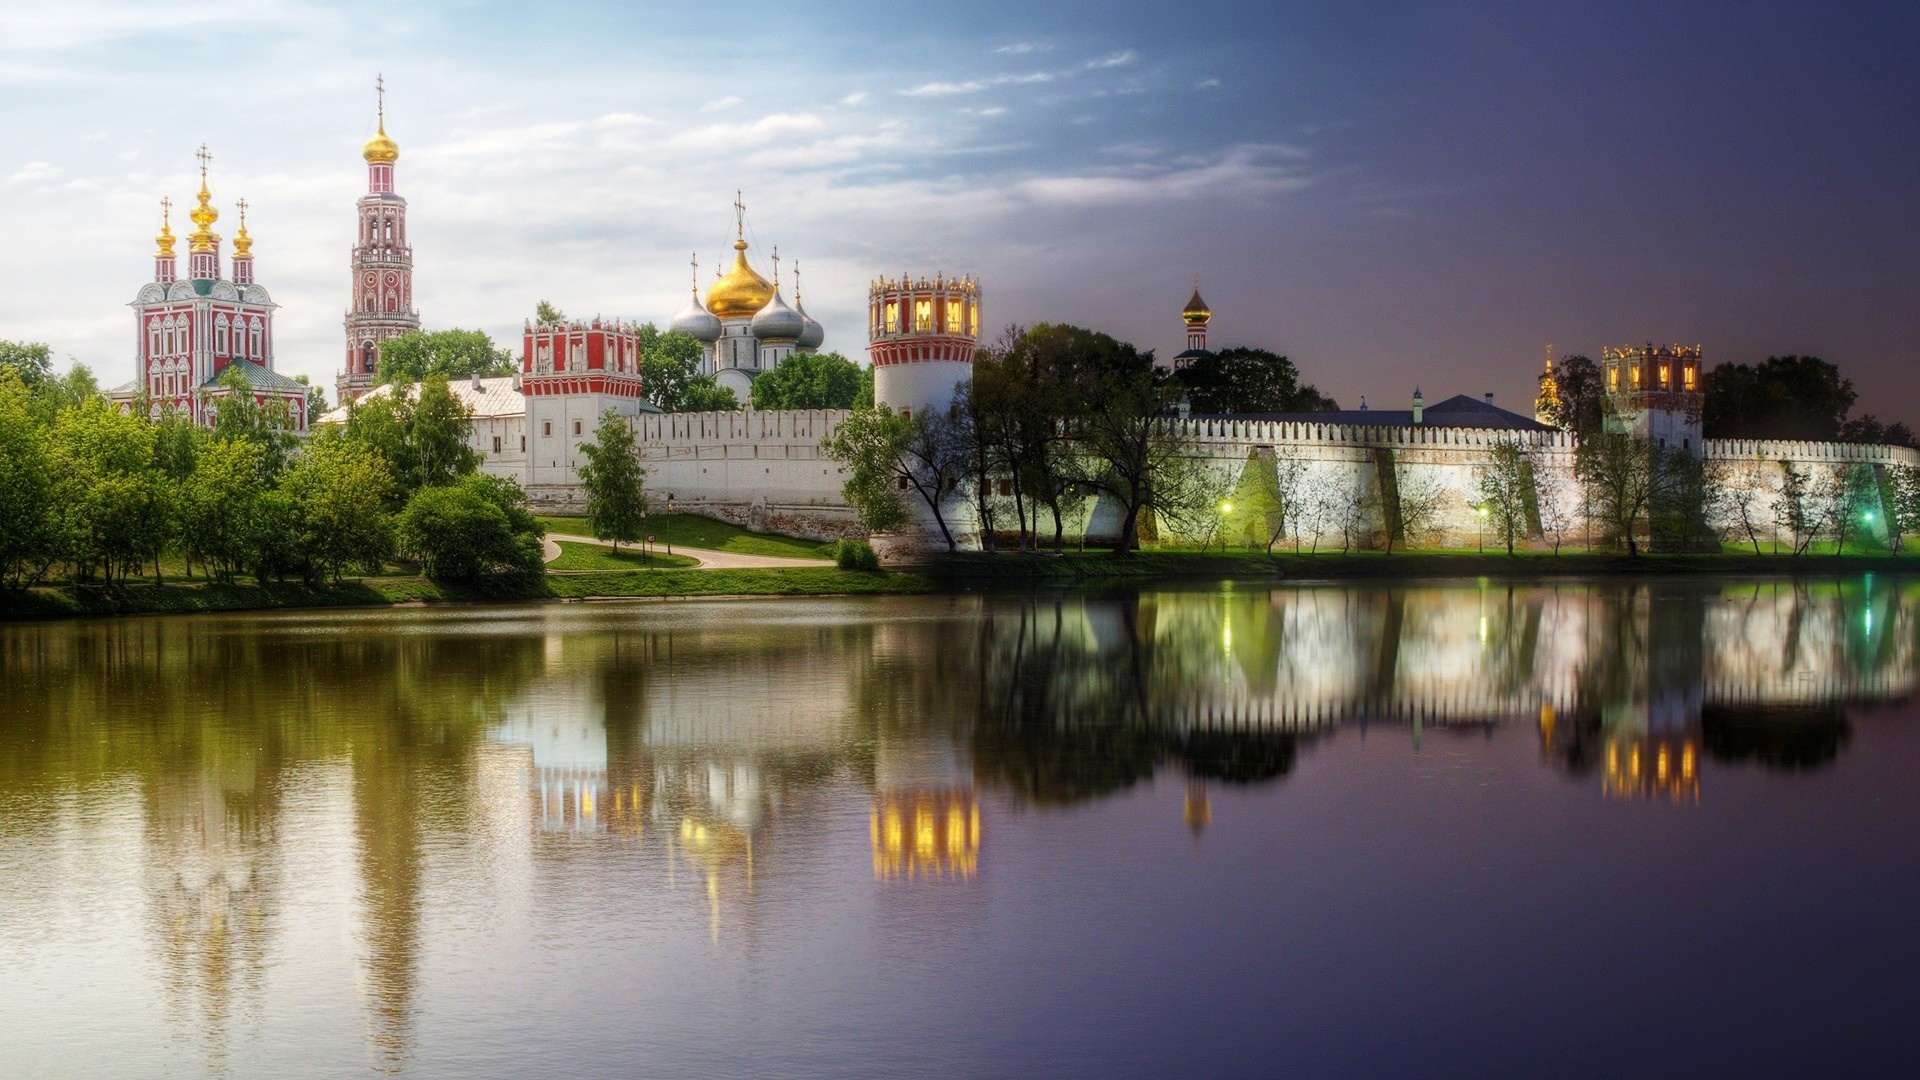 Novodevichy Convent In Summer Wallpapers - 1920x1080 - 561698